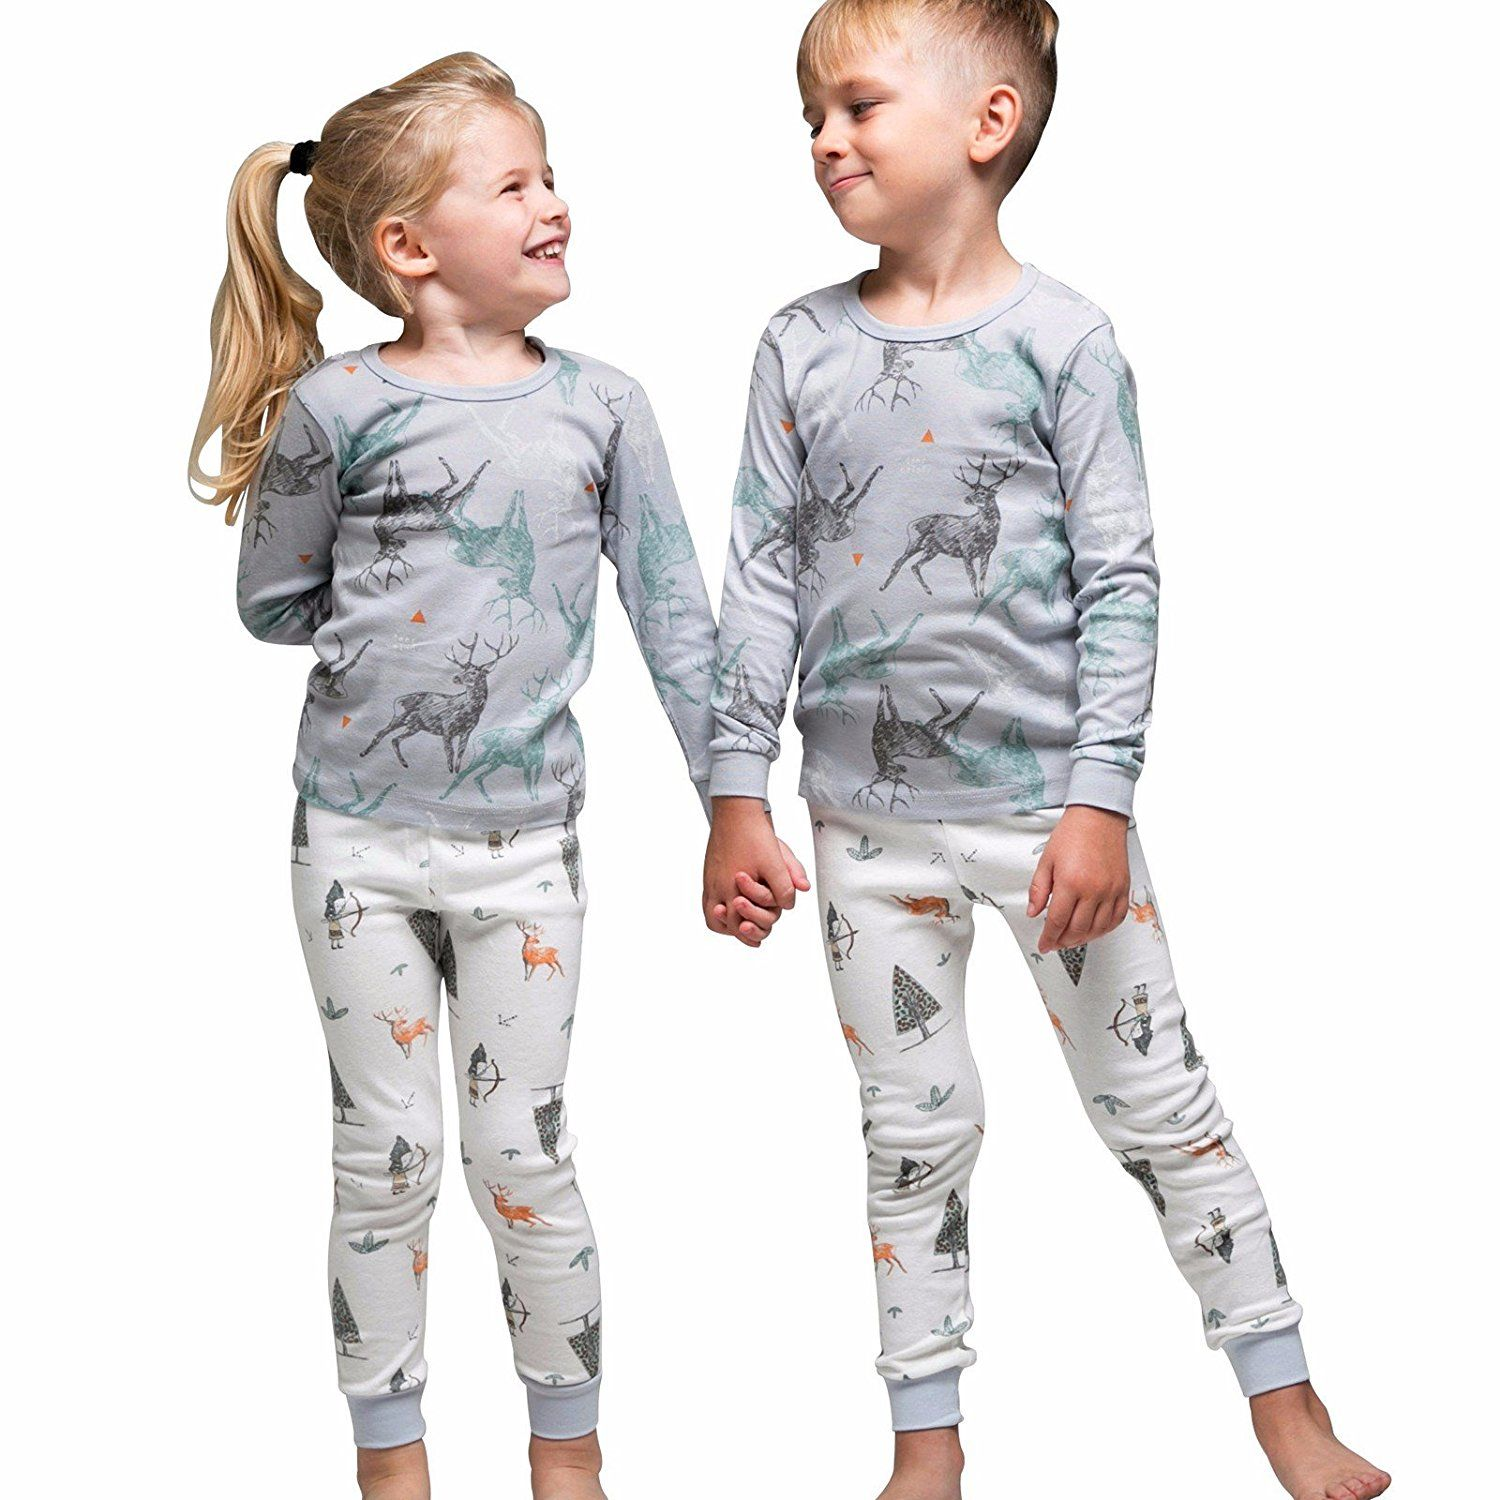 Tory bam Cotton Thermal Underwear Pajamas Set for Kids Little Boys